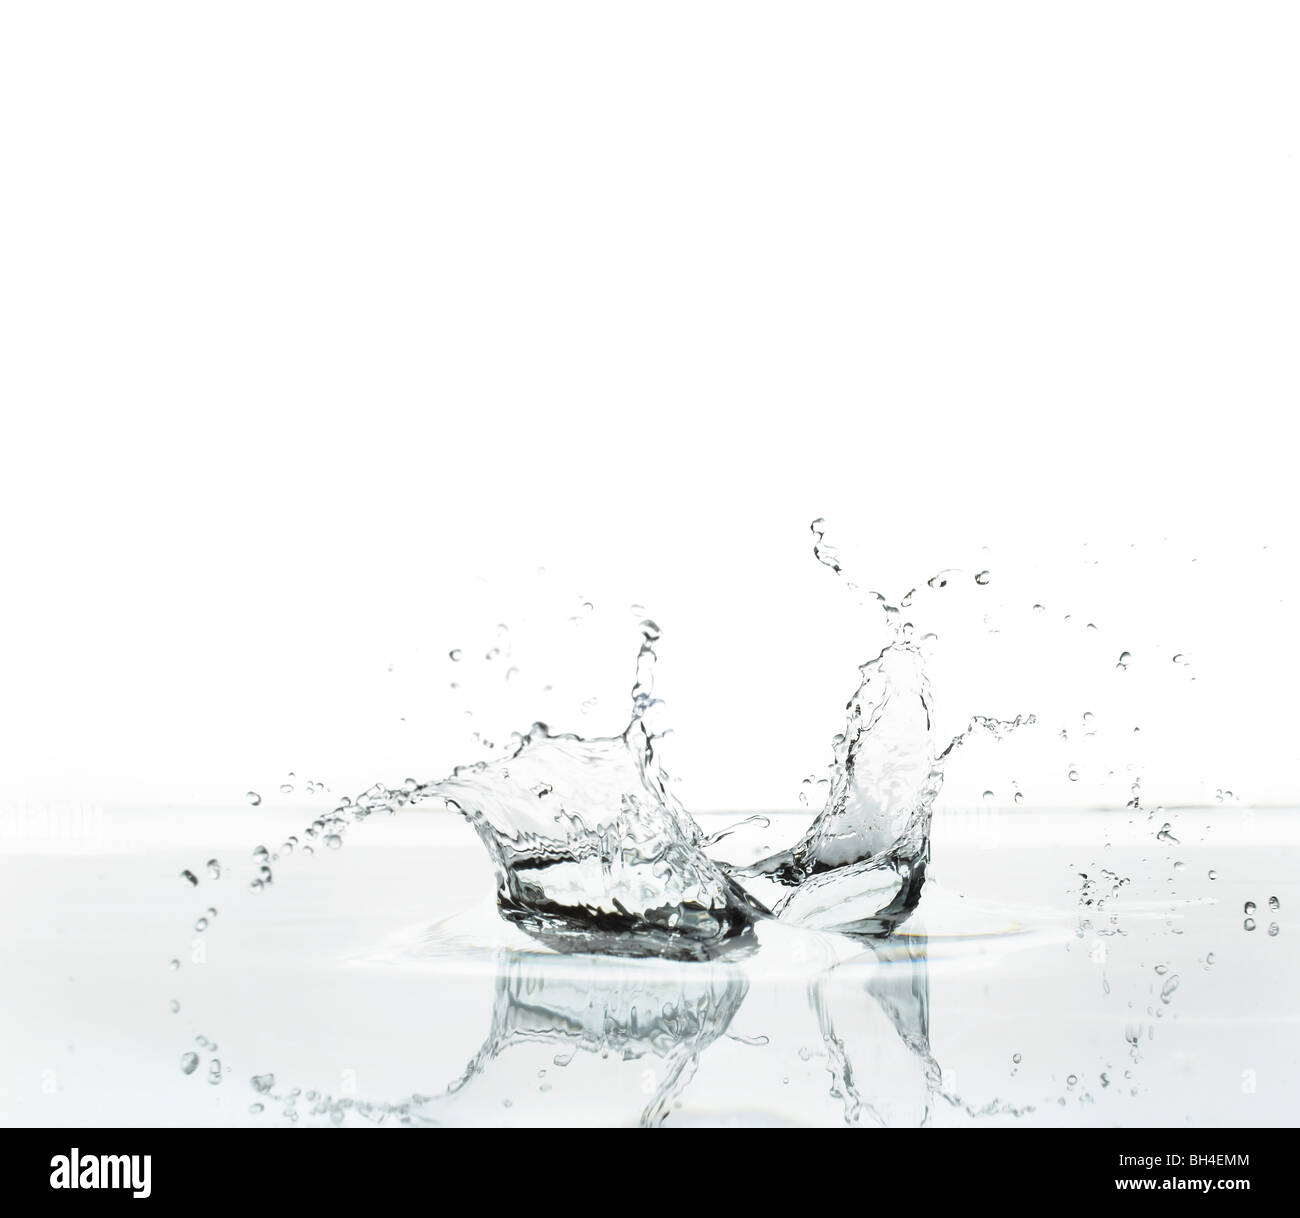 Splash of water on a white background - Stock Image